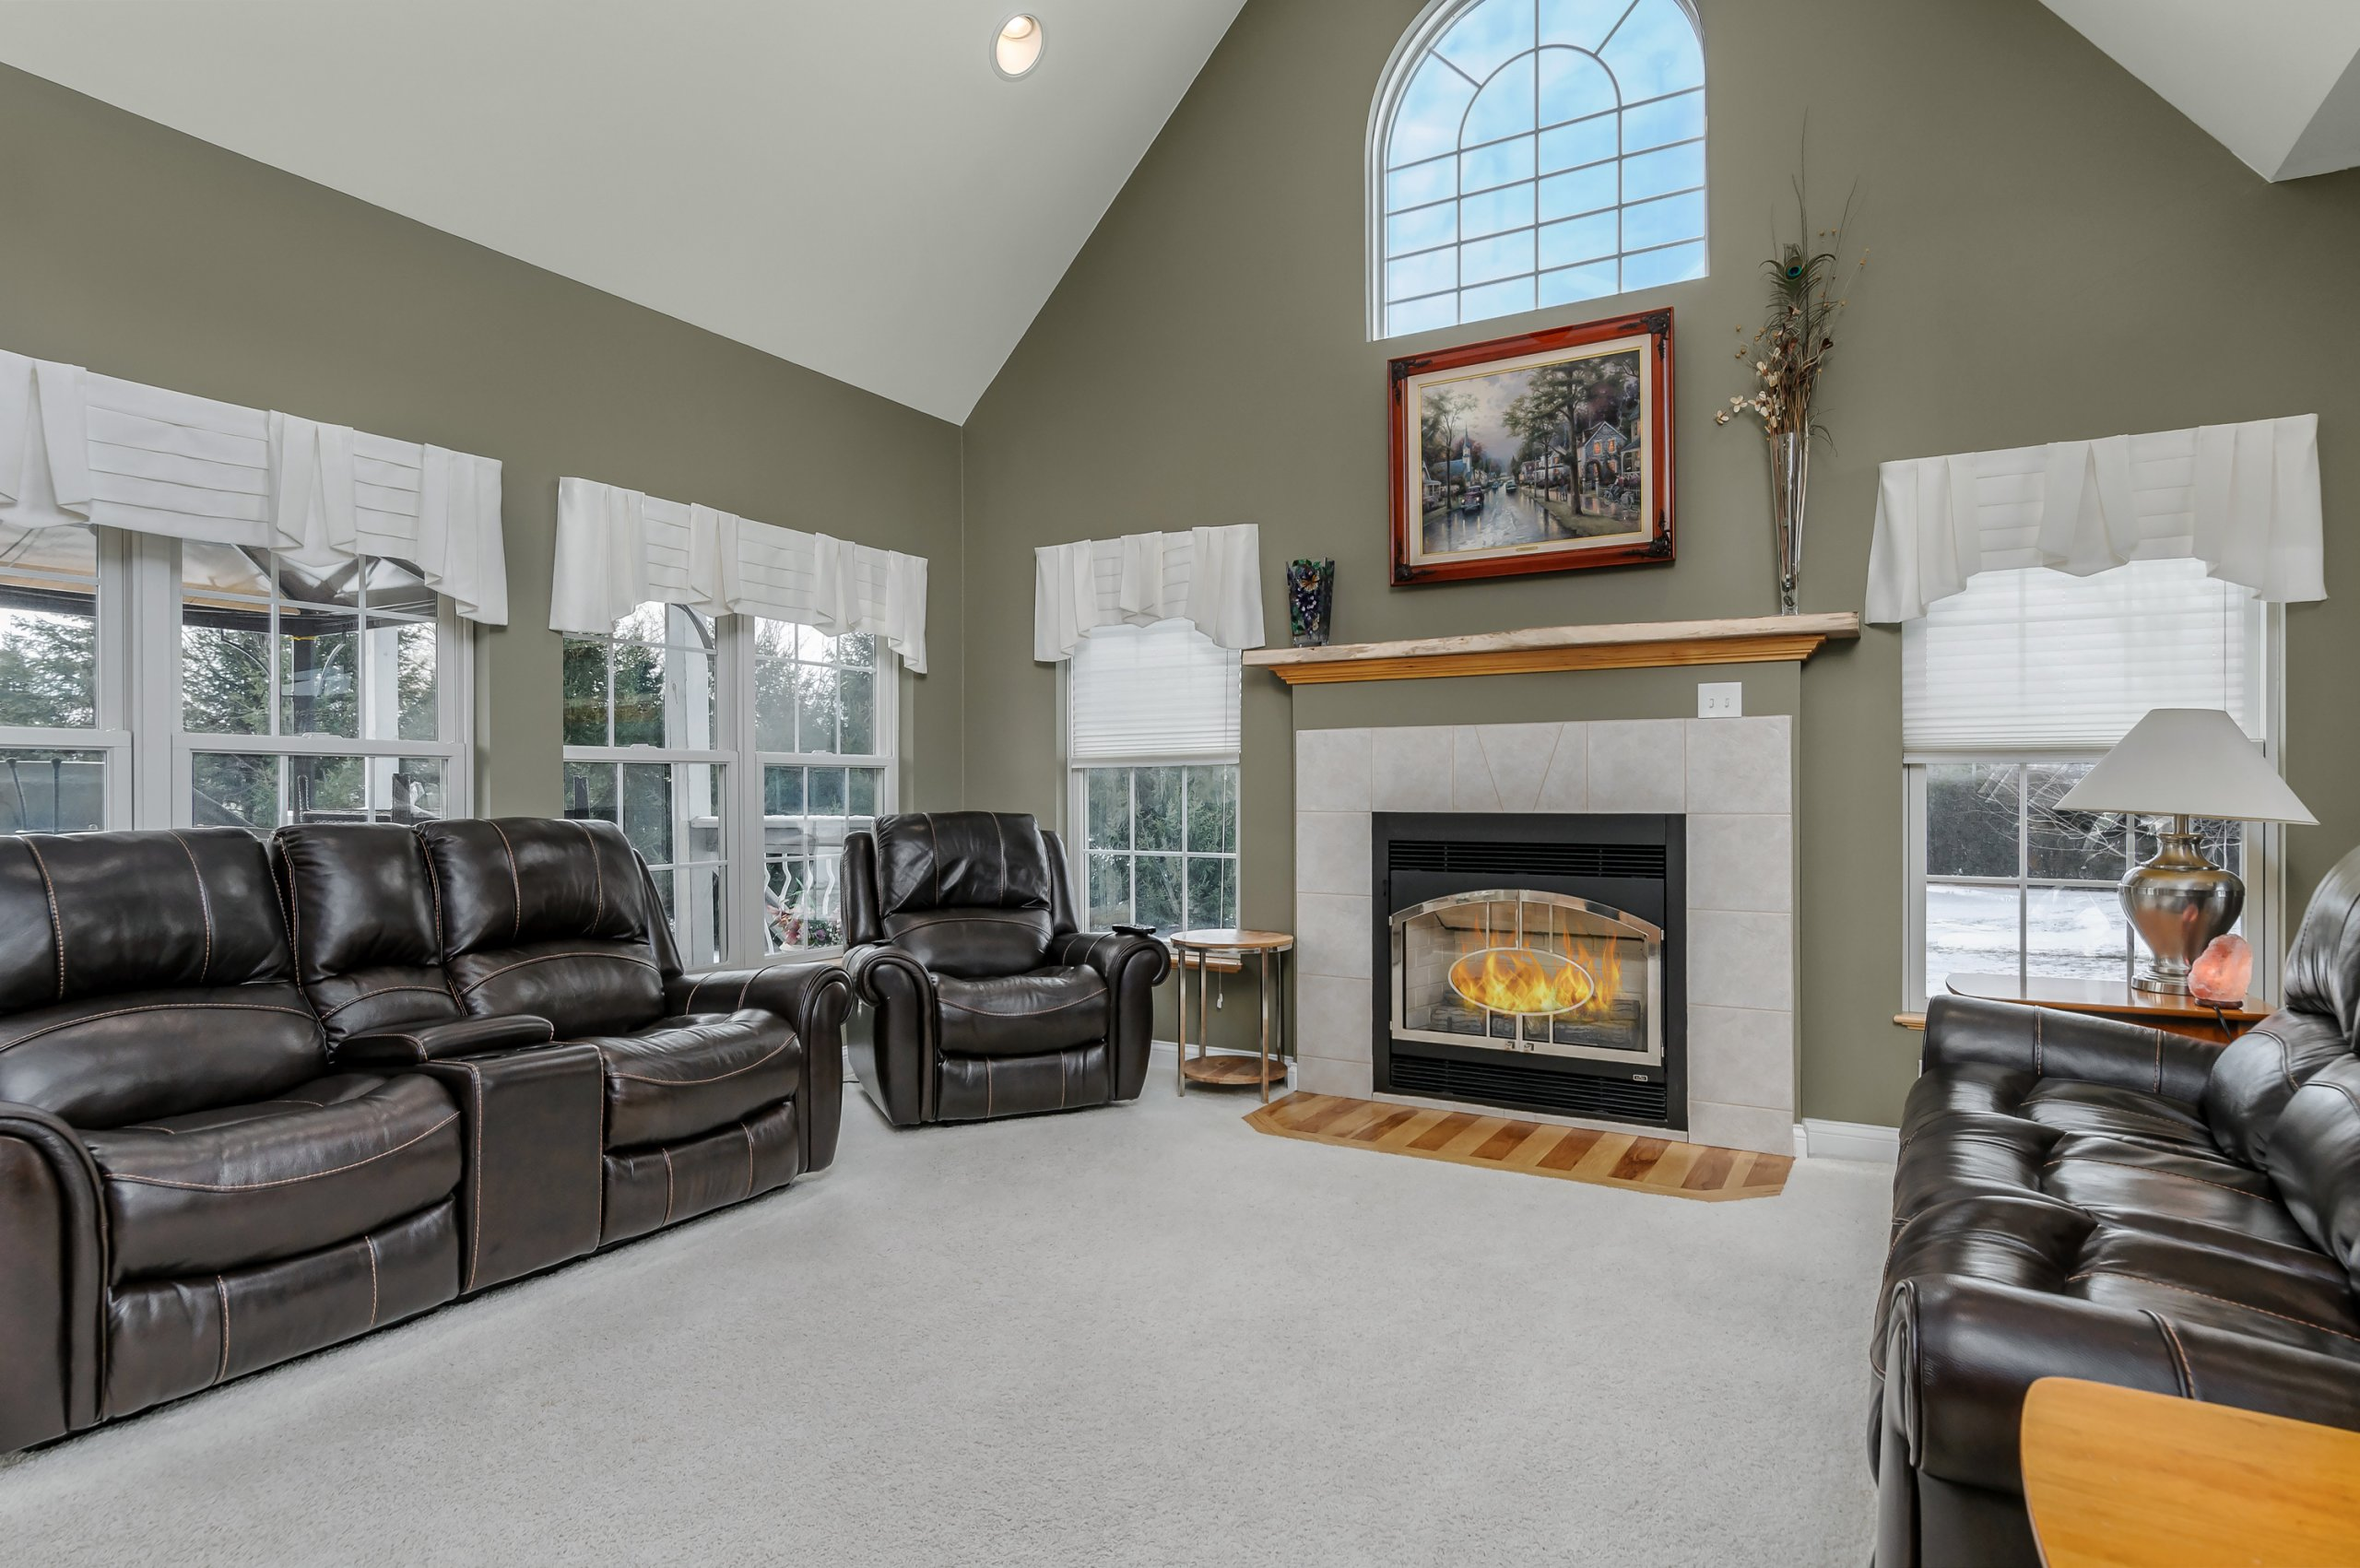 Stately living room with high vaulted ceiling in Sheridan, Illinois.